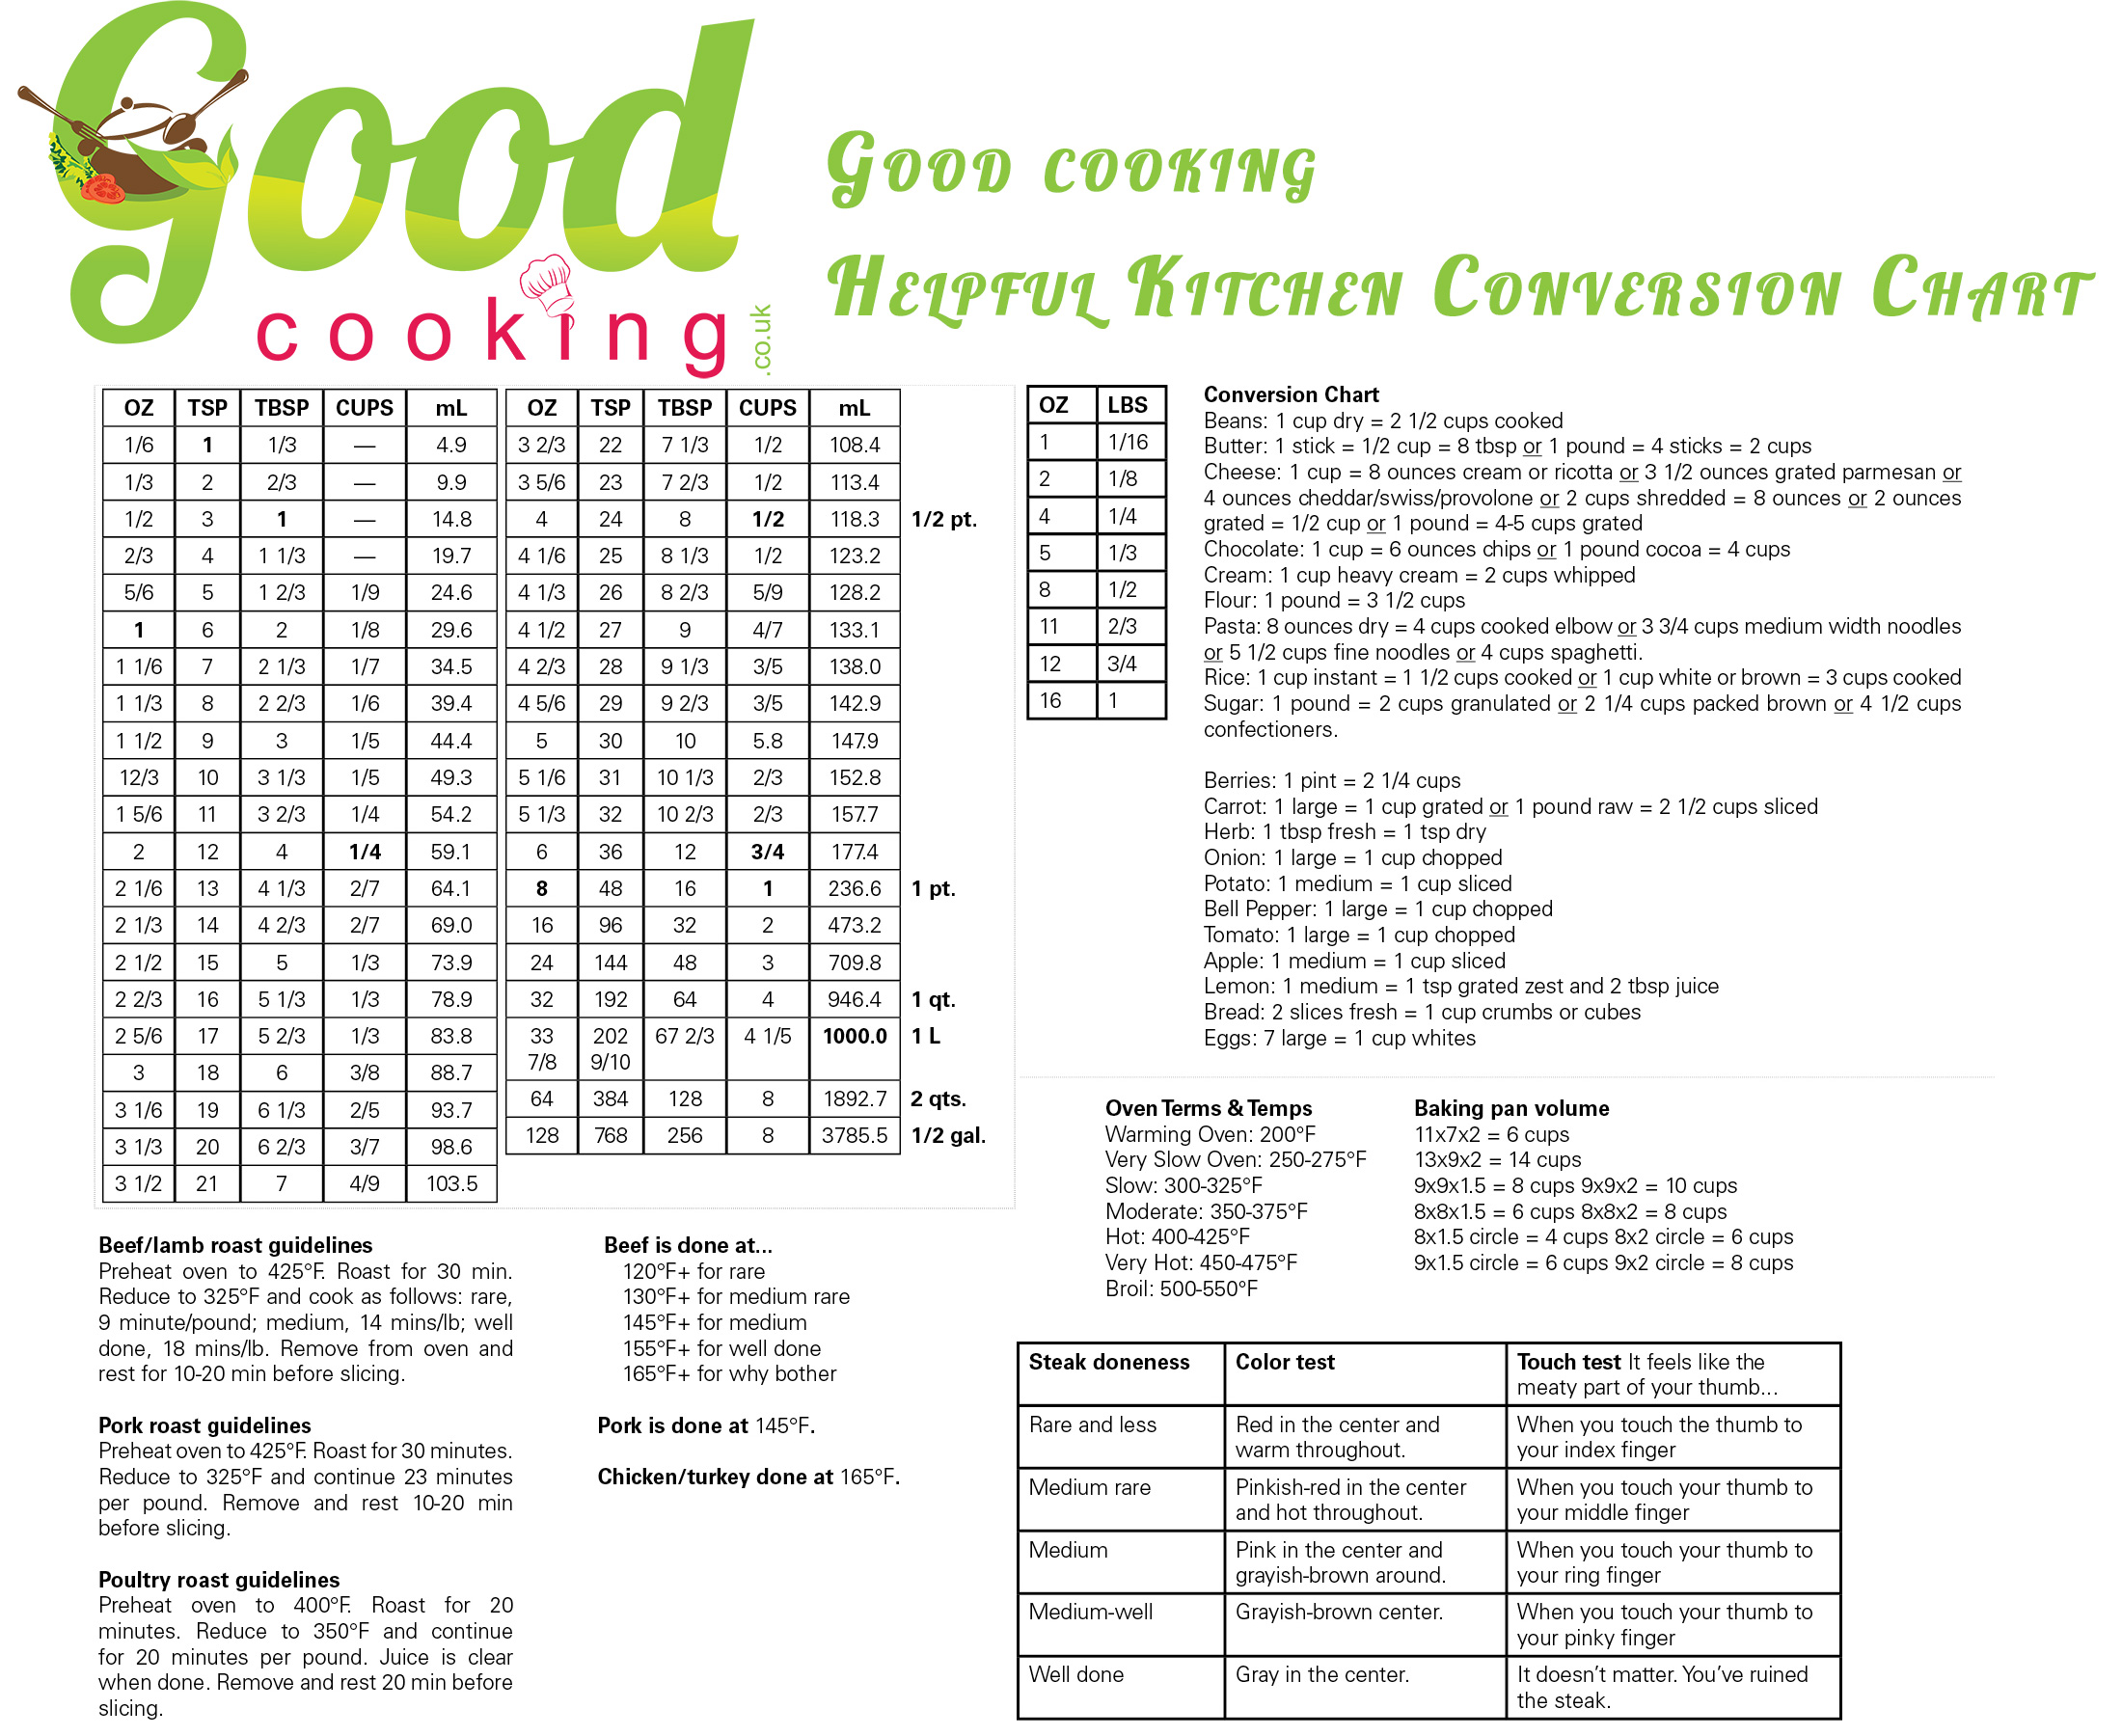 image cooking conversion table chart